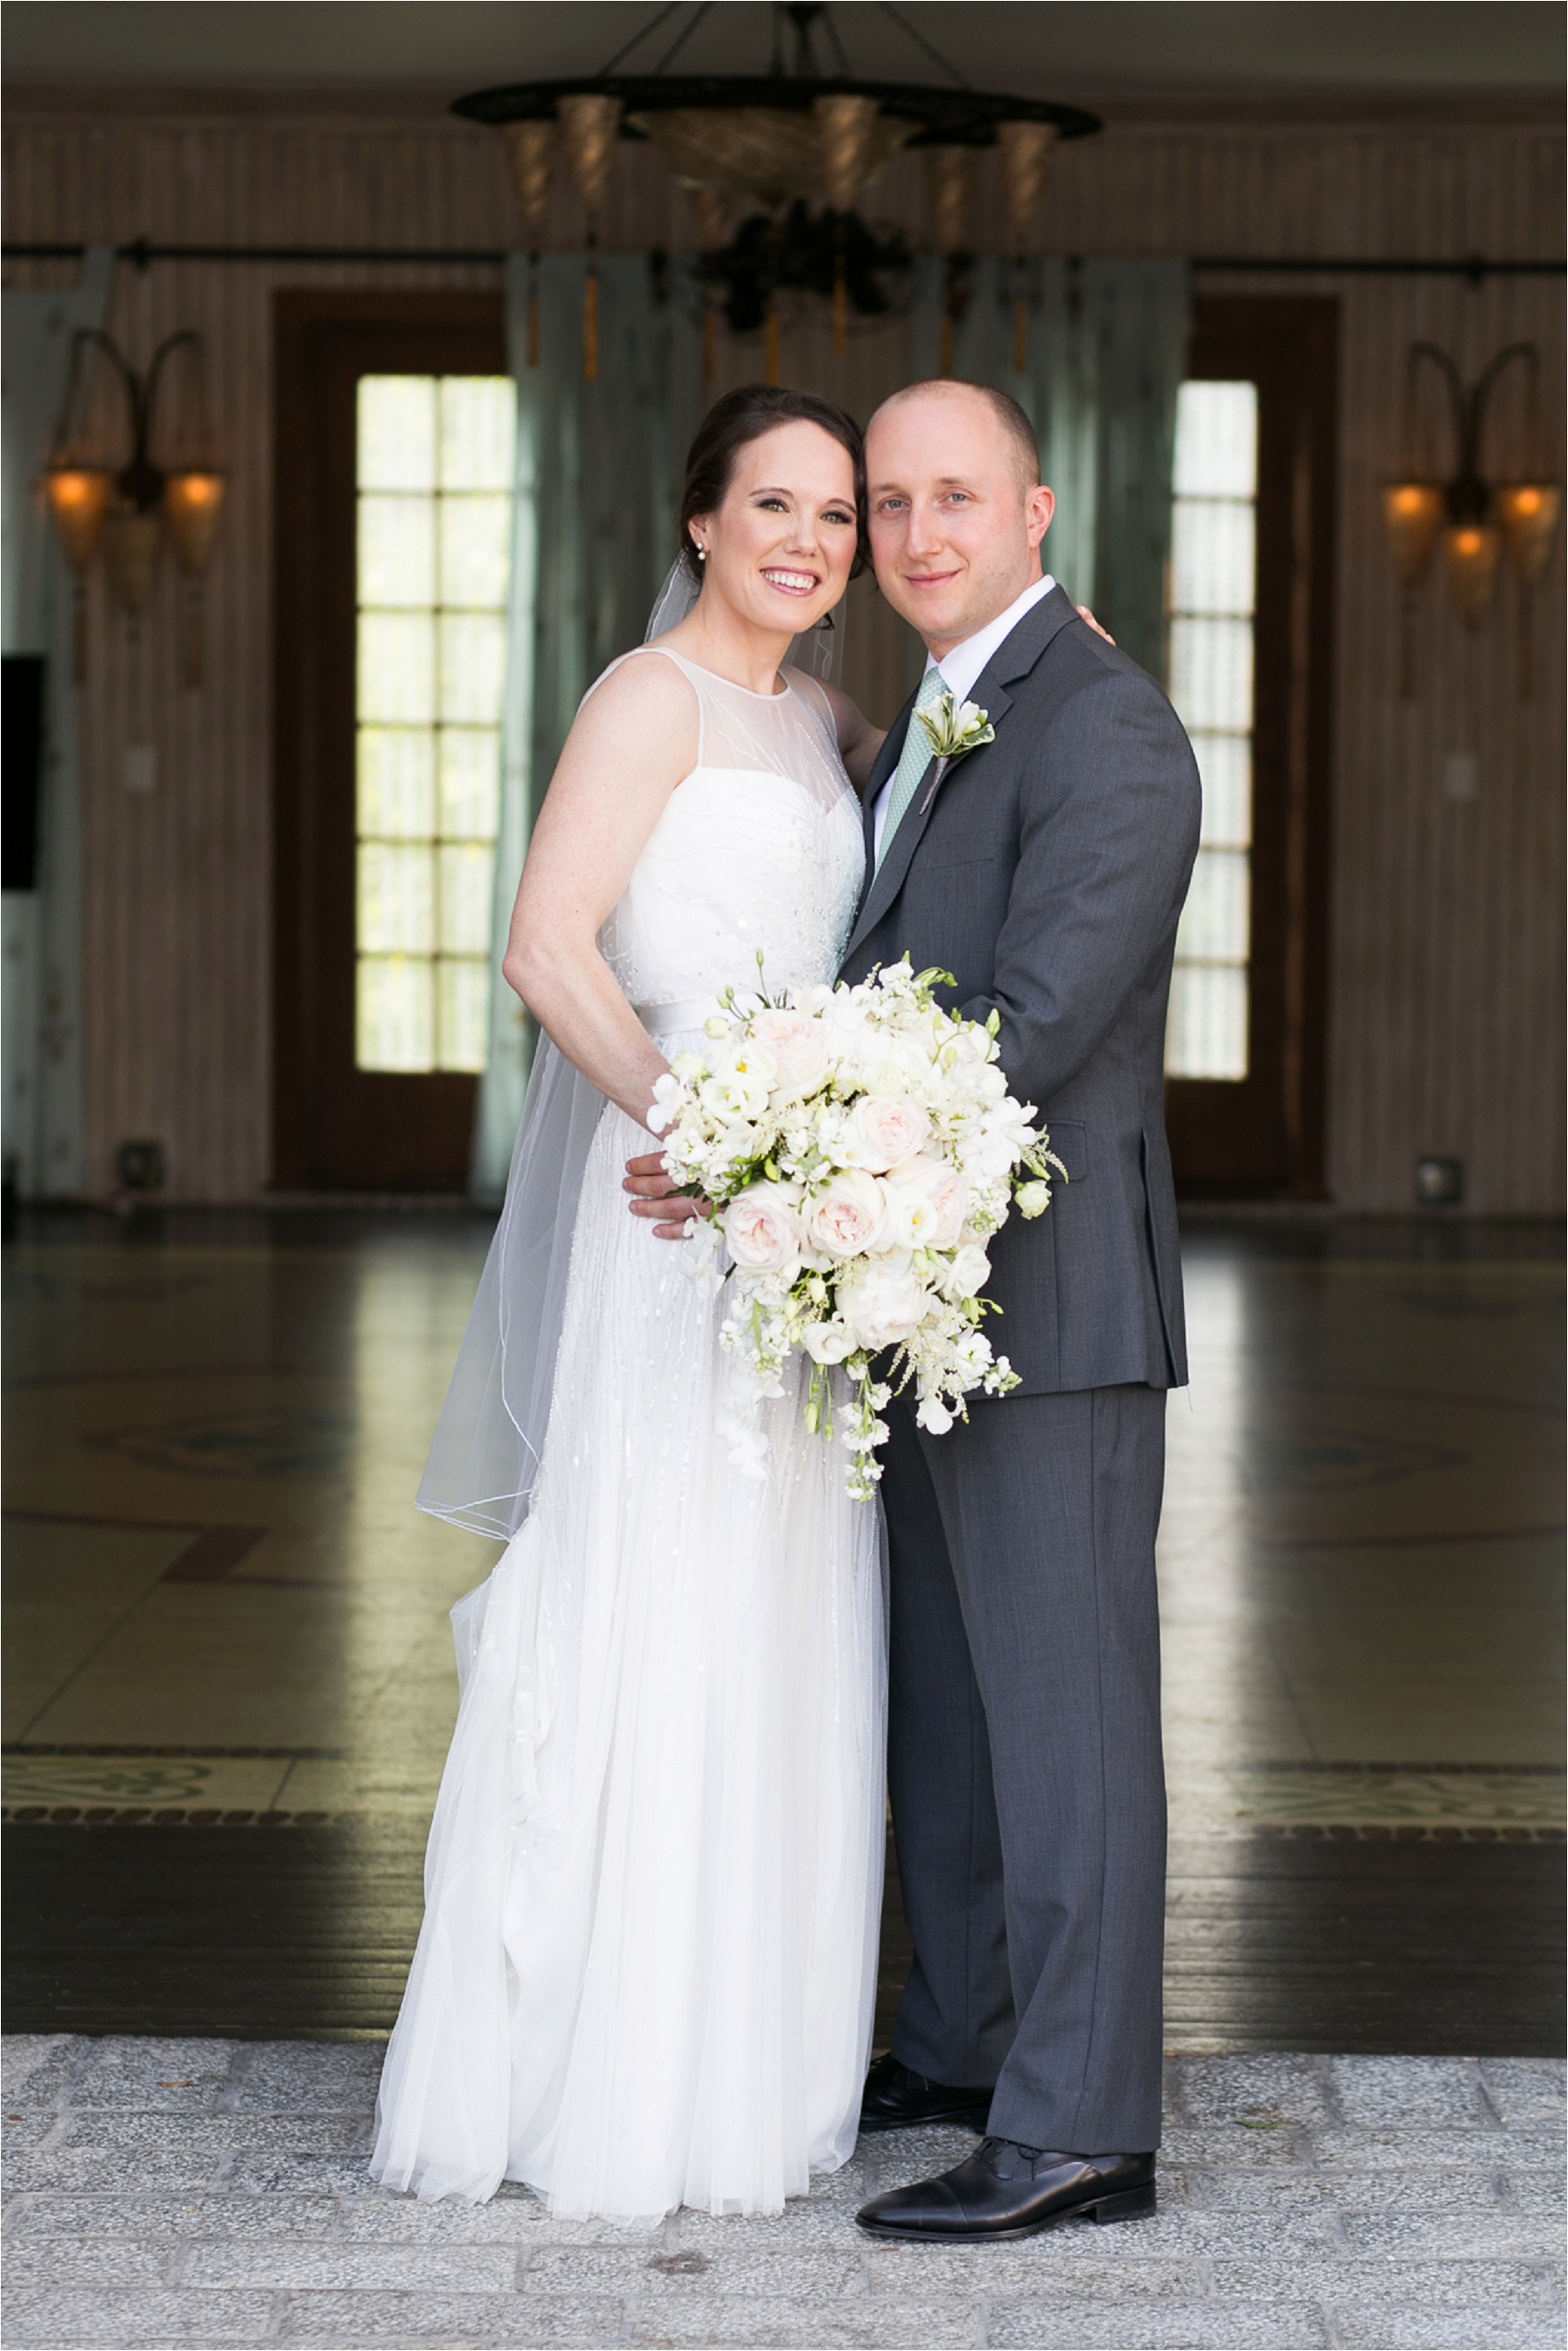 Photo of a bride and groom at the Delamar Hotel in Southport, CT